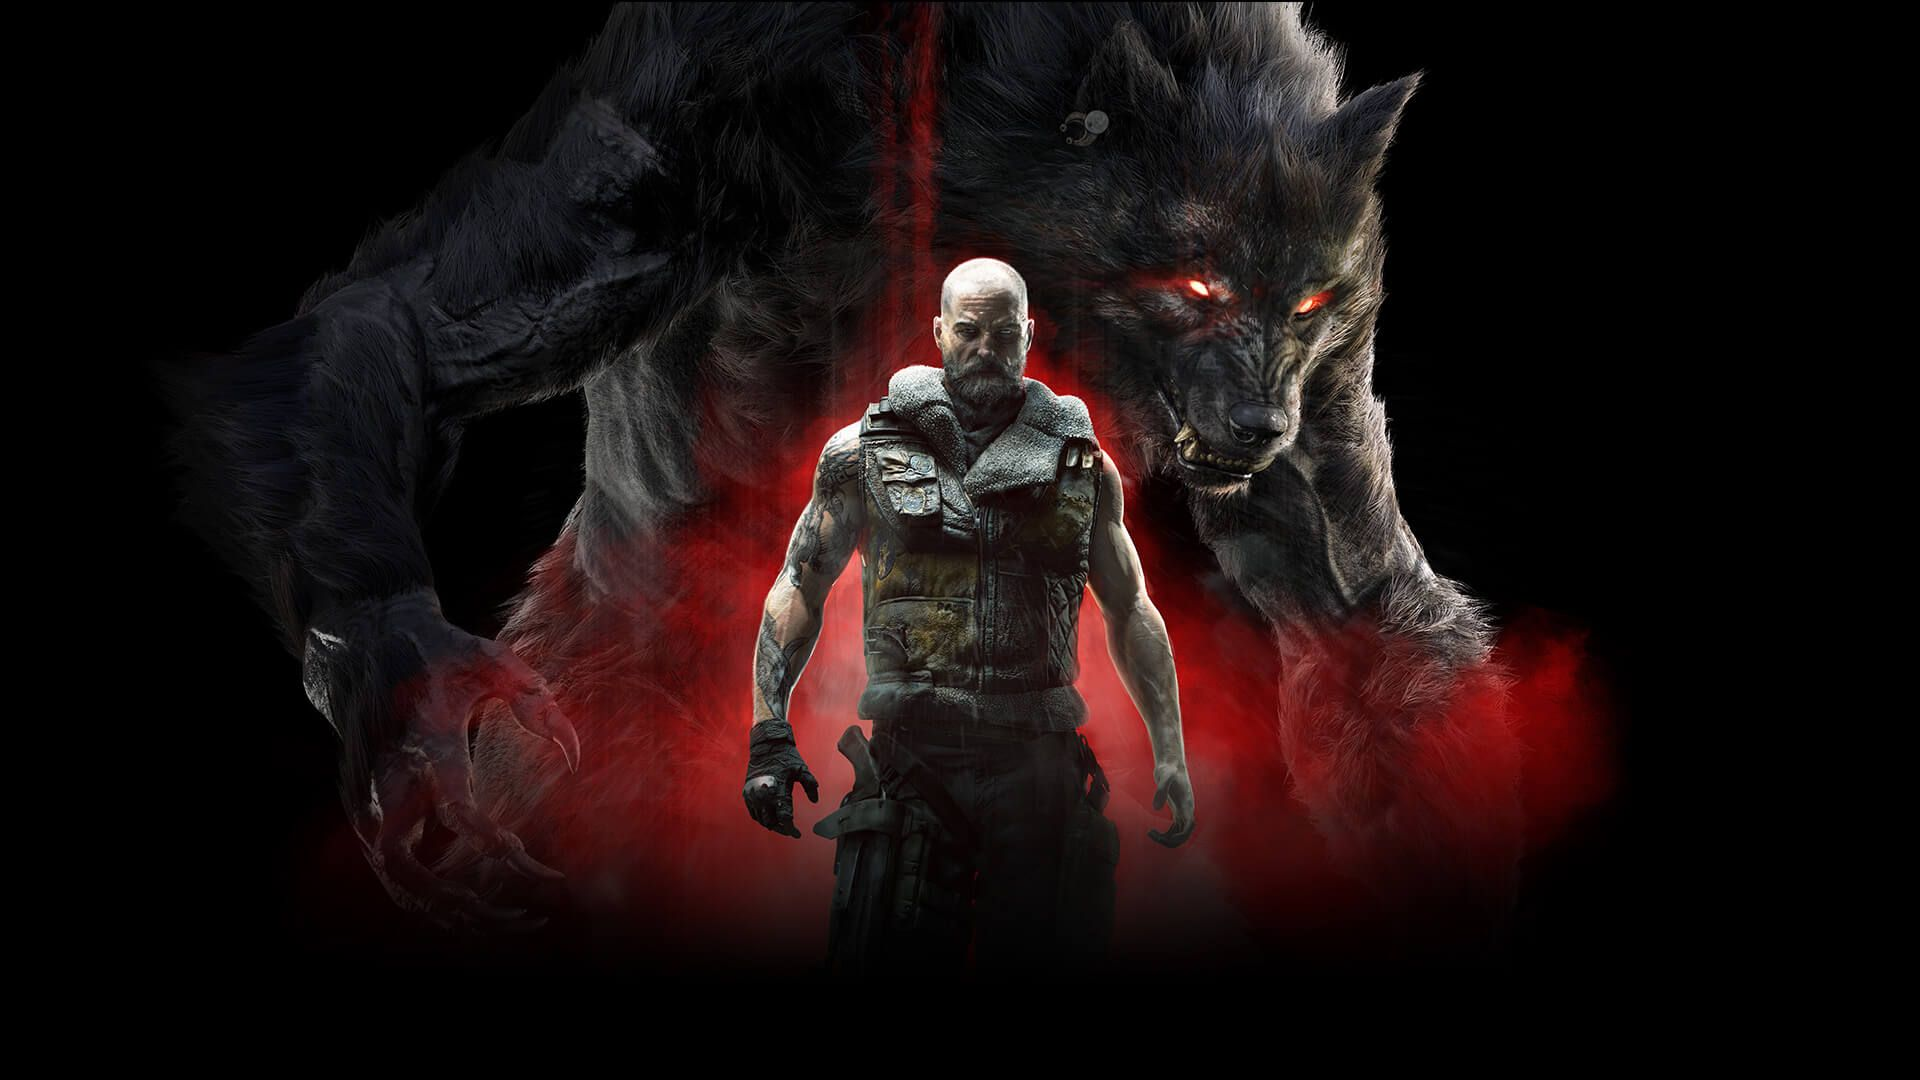 Check out the new Werewolf The Apocalypse Earthblood